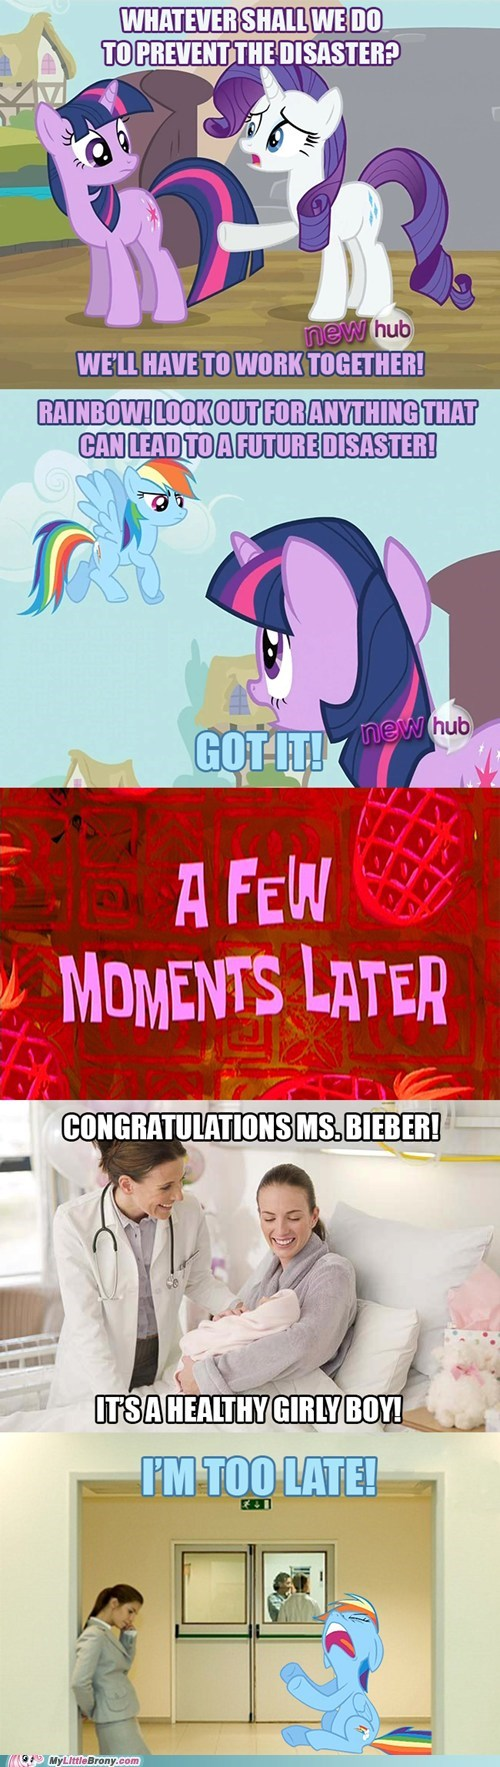 comic,disaster,justin bieber,Sad,so bendyrulz or cubonator,so-bendyrulz-or-cubonator,so close,twilight sparkle